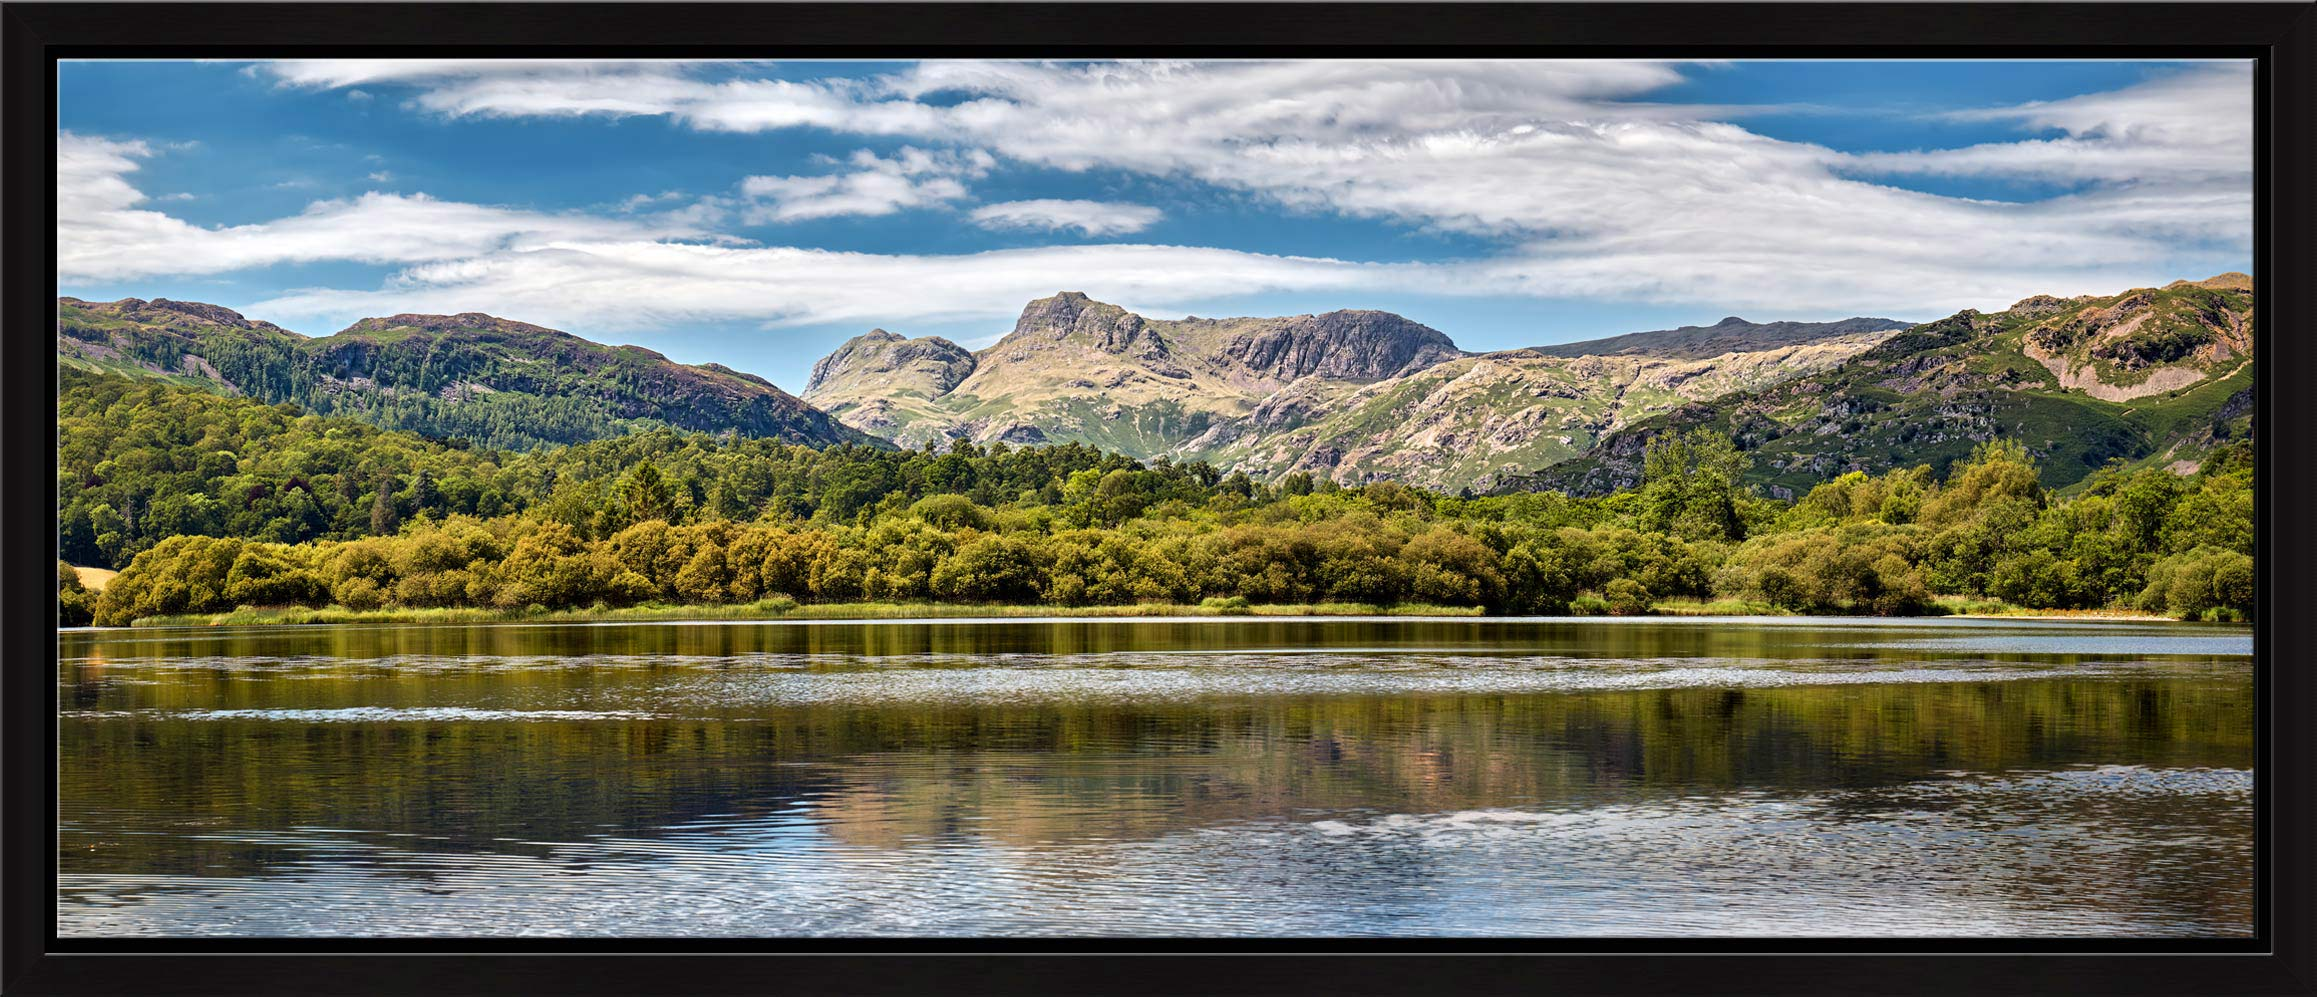 Summer view of the Langdale Pikes over Elter Water